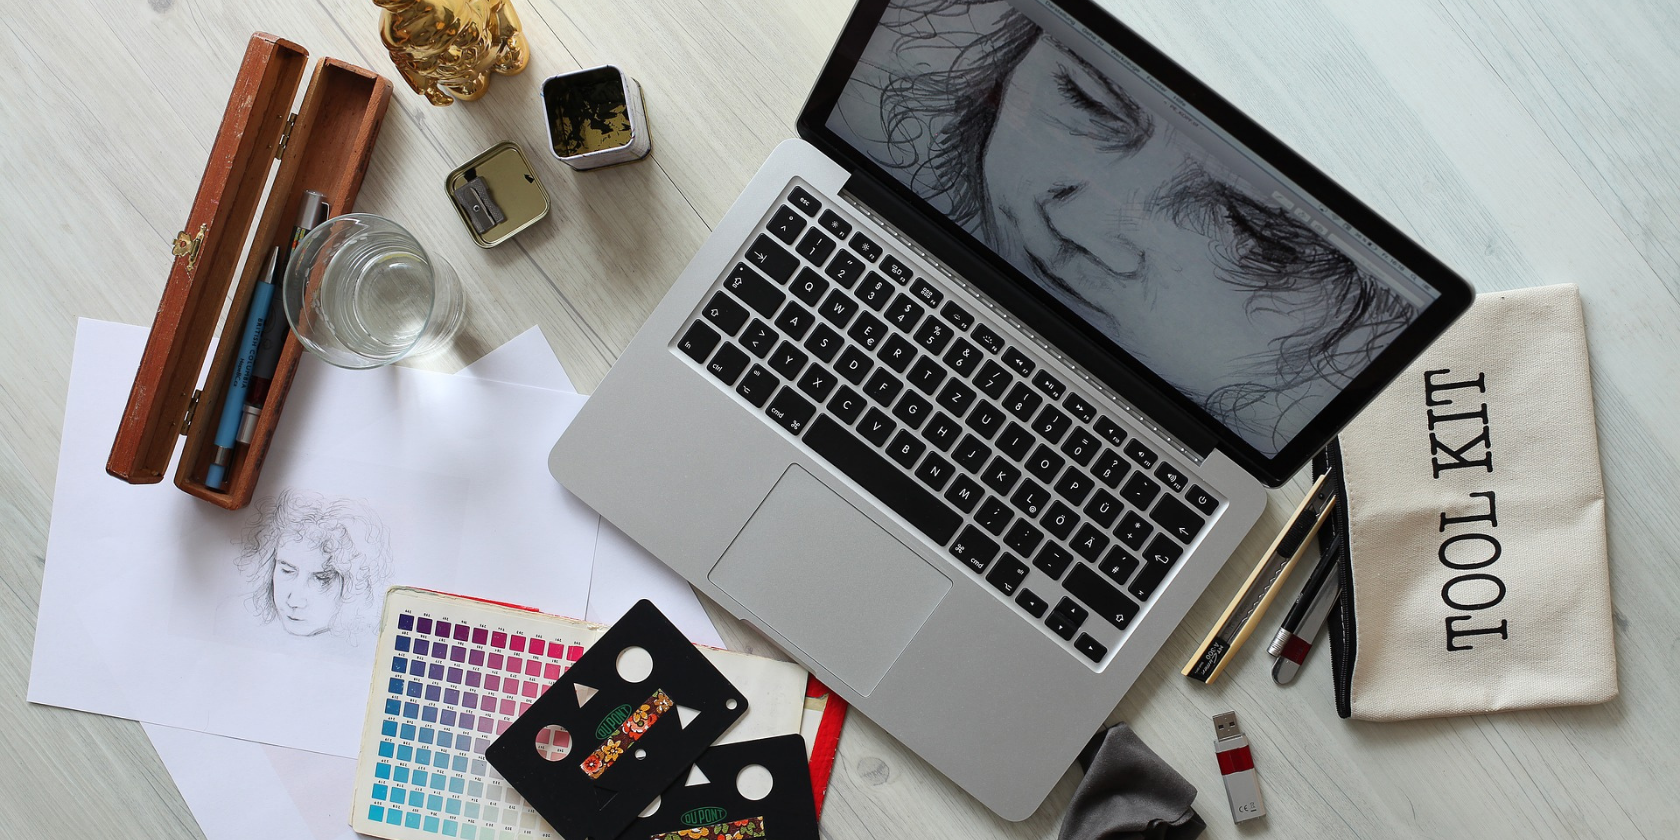 5 Essential iPhone Apps for Any Graphic Designer